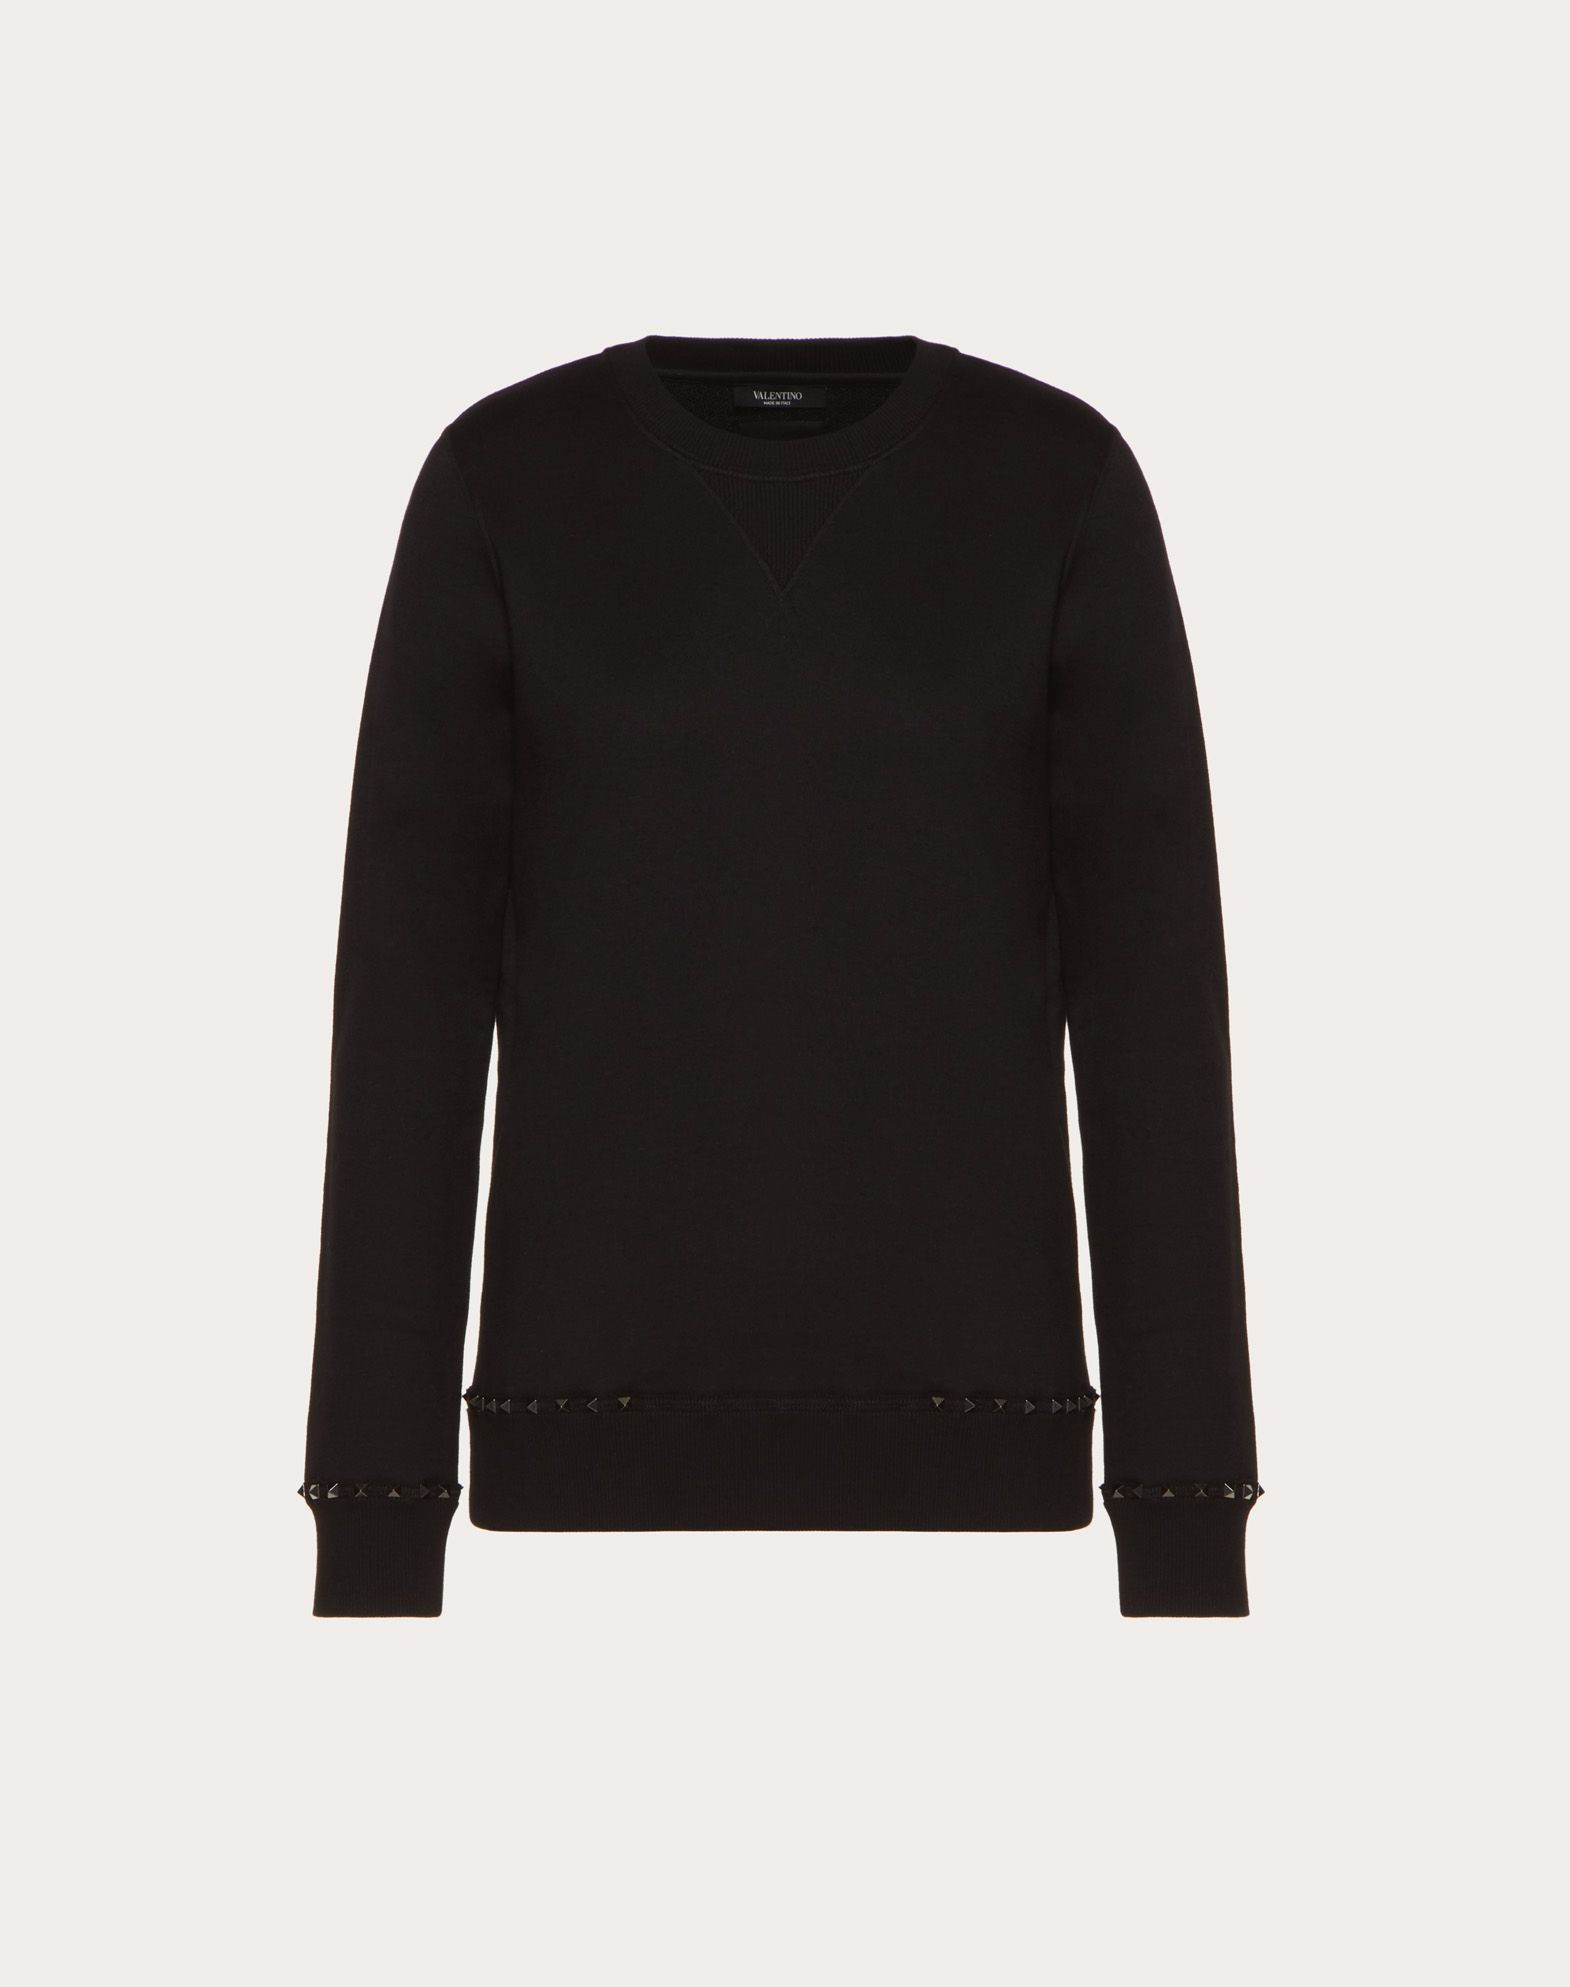 Buy Cheap Reliable Black Rockstud sweatshirt Valentino Visa Payment Sale Online Outlet Real Shop For Online Discount Comfortable qzKwvG